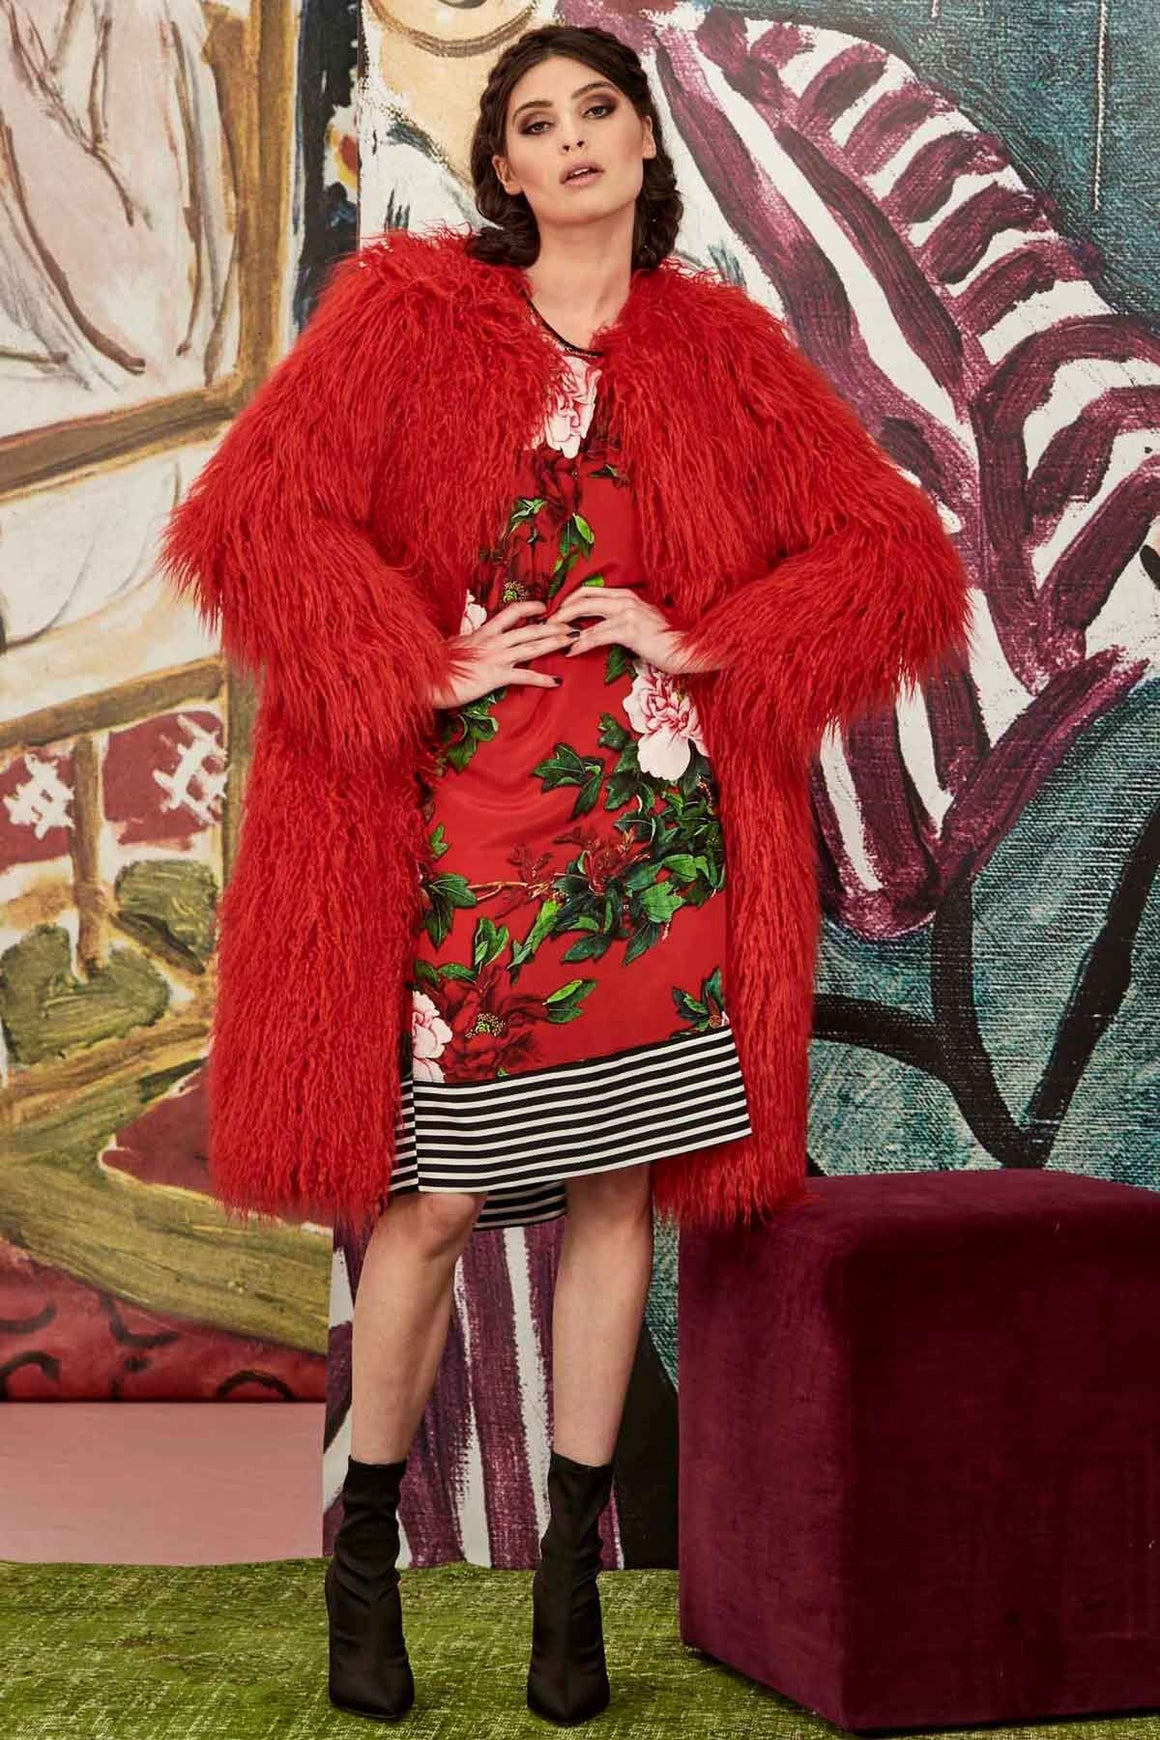 To Fur With Love Coat - Red | Shop Curate online at Wallace & Gibbs